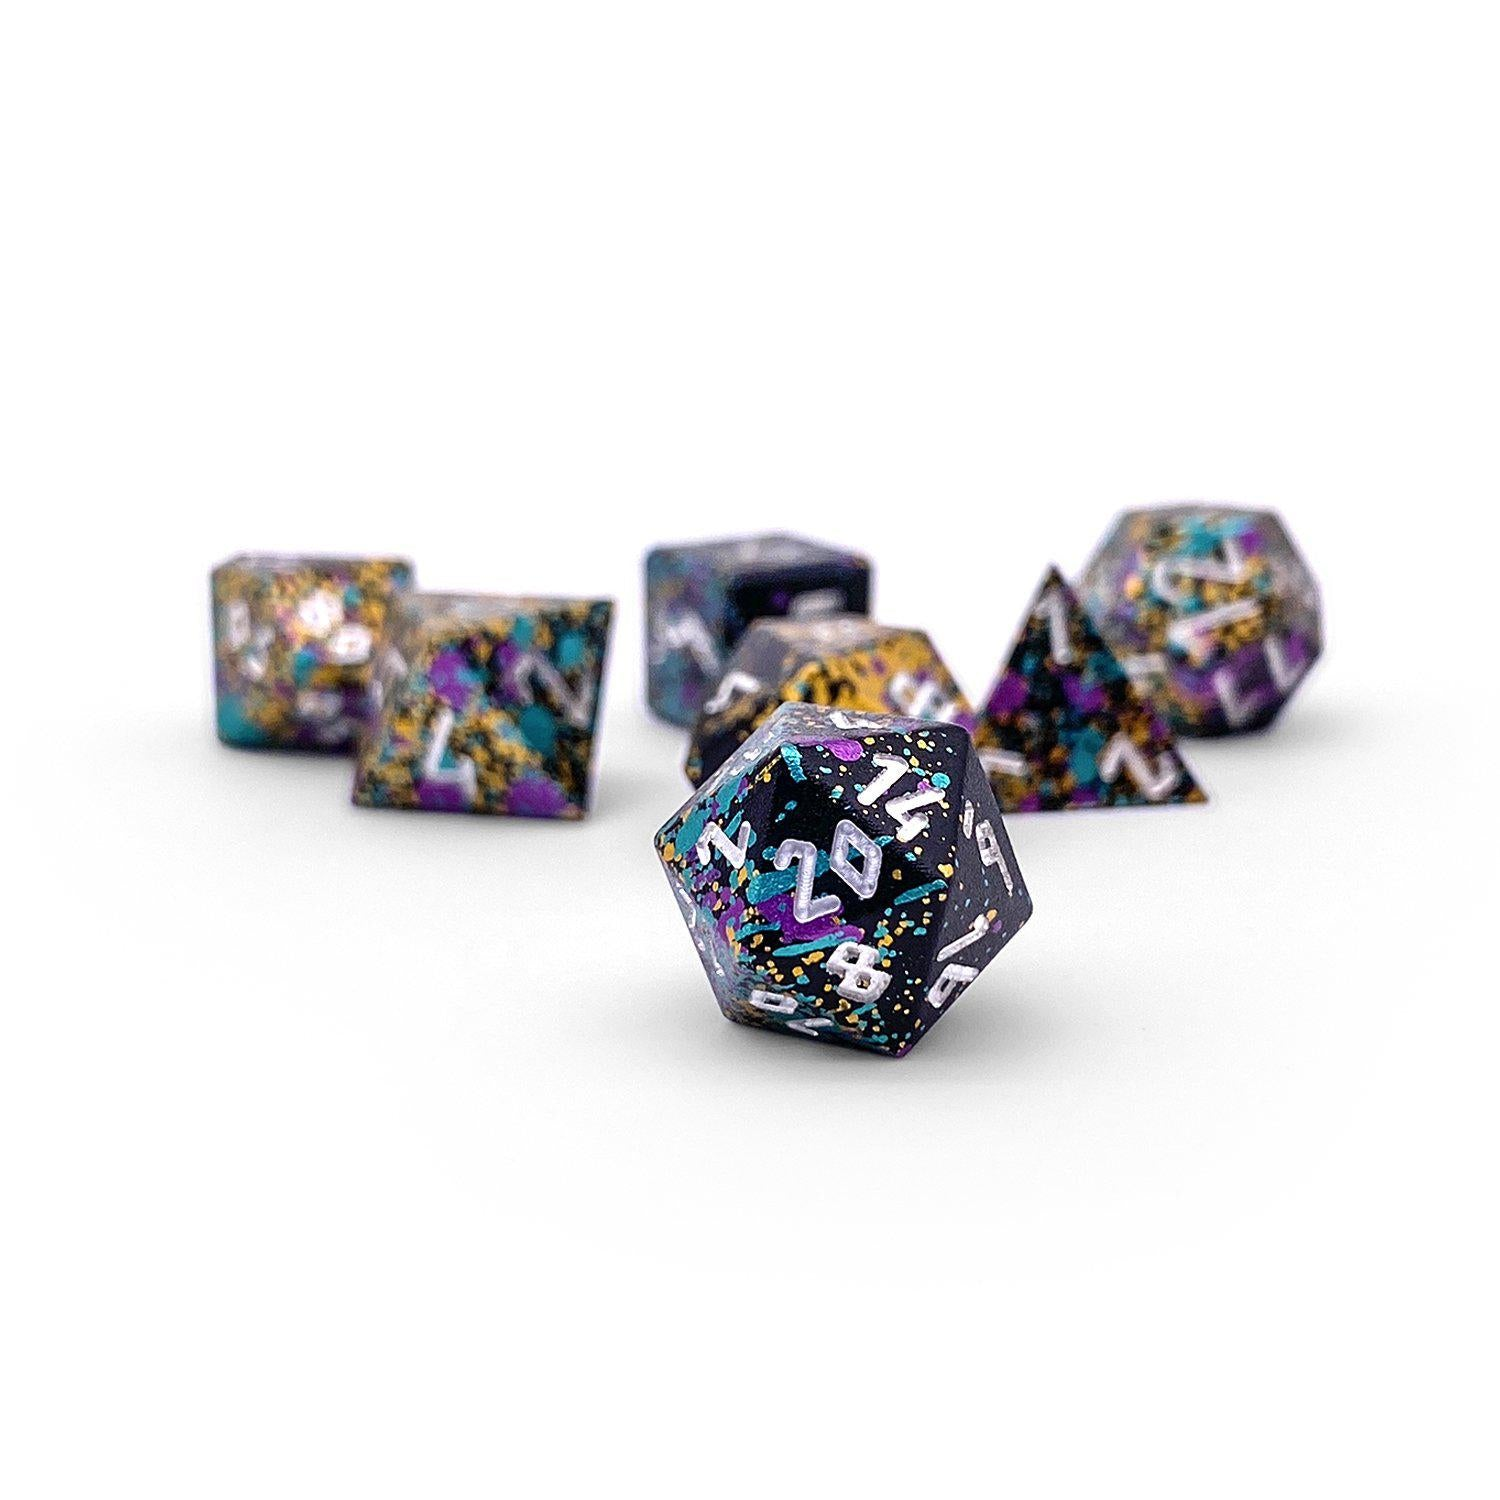 Court Jester Wondrous Pebble ™ Dice - 10mm 6063 Aircraft Grade Aluminum Mini